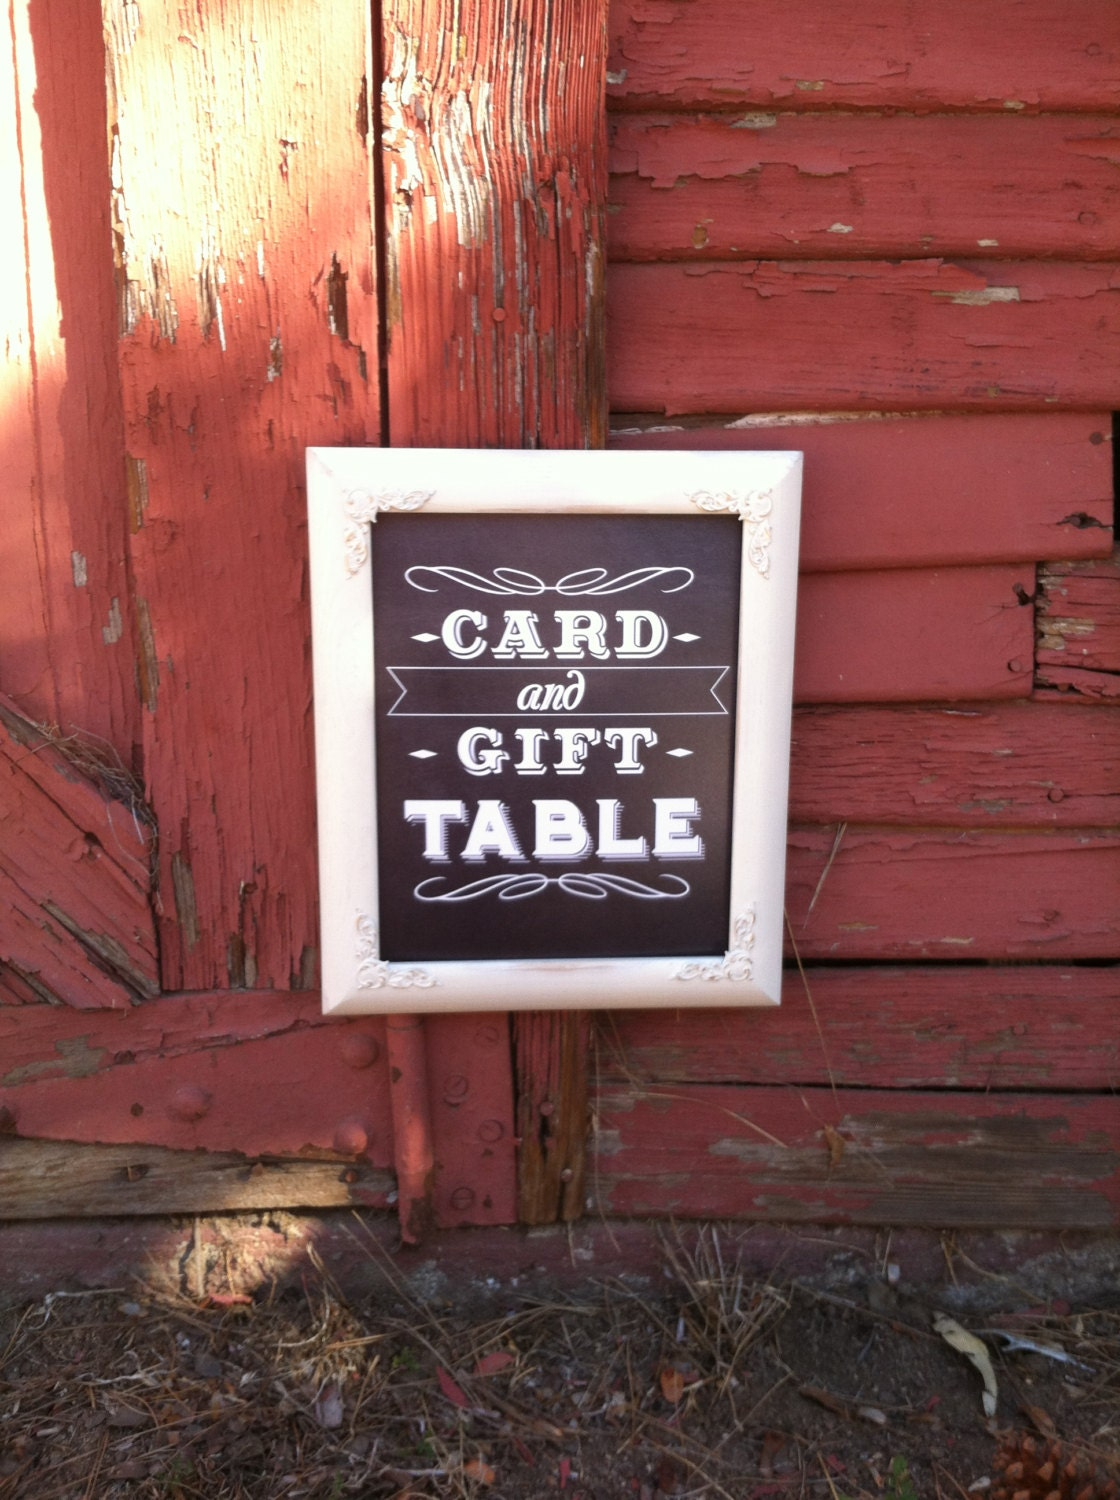 Wedding Gift Card Table : Wedding Sign 8x10 Card & Gift Table Rustic by ThePaintedLdy